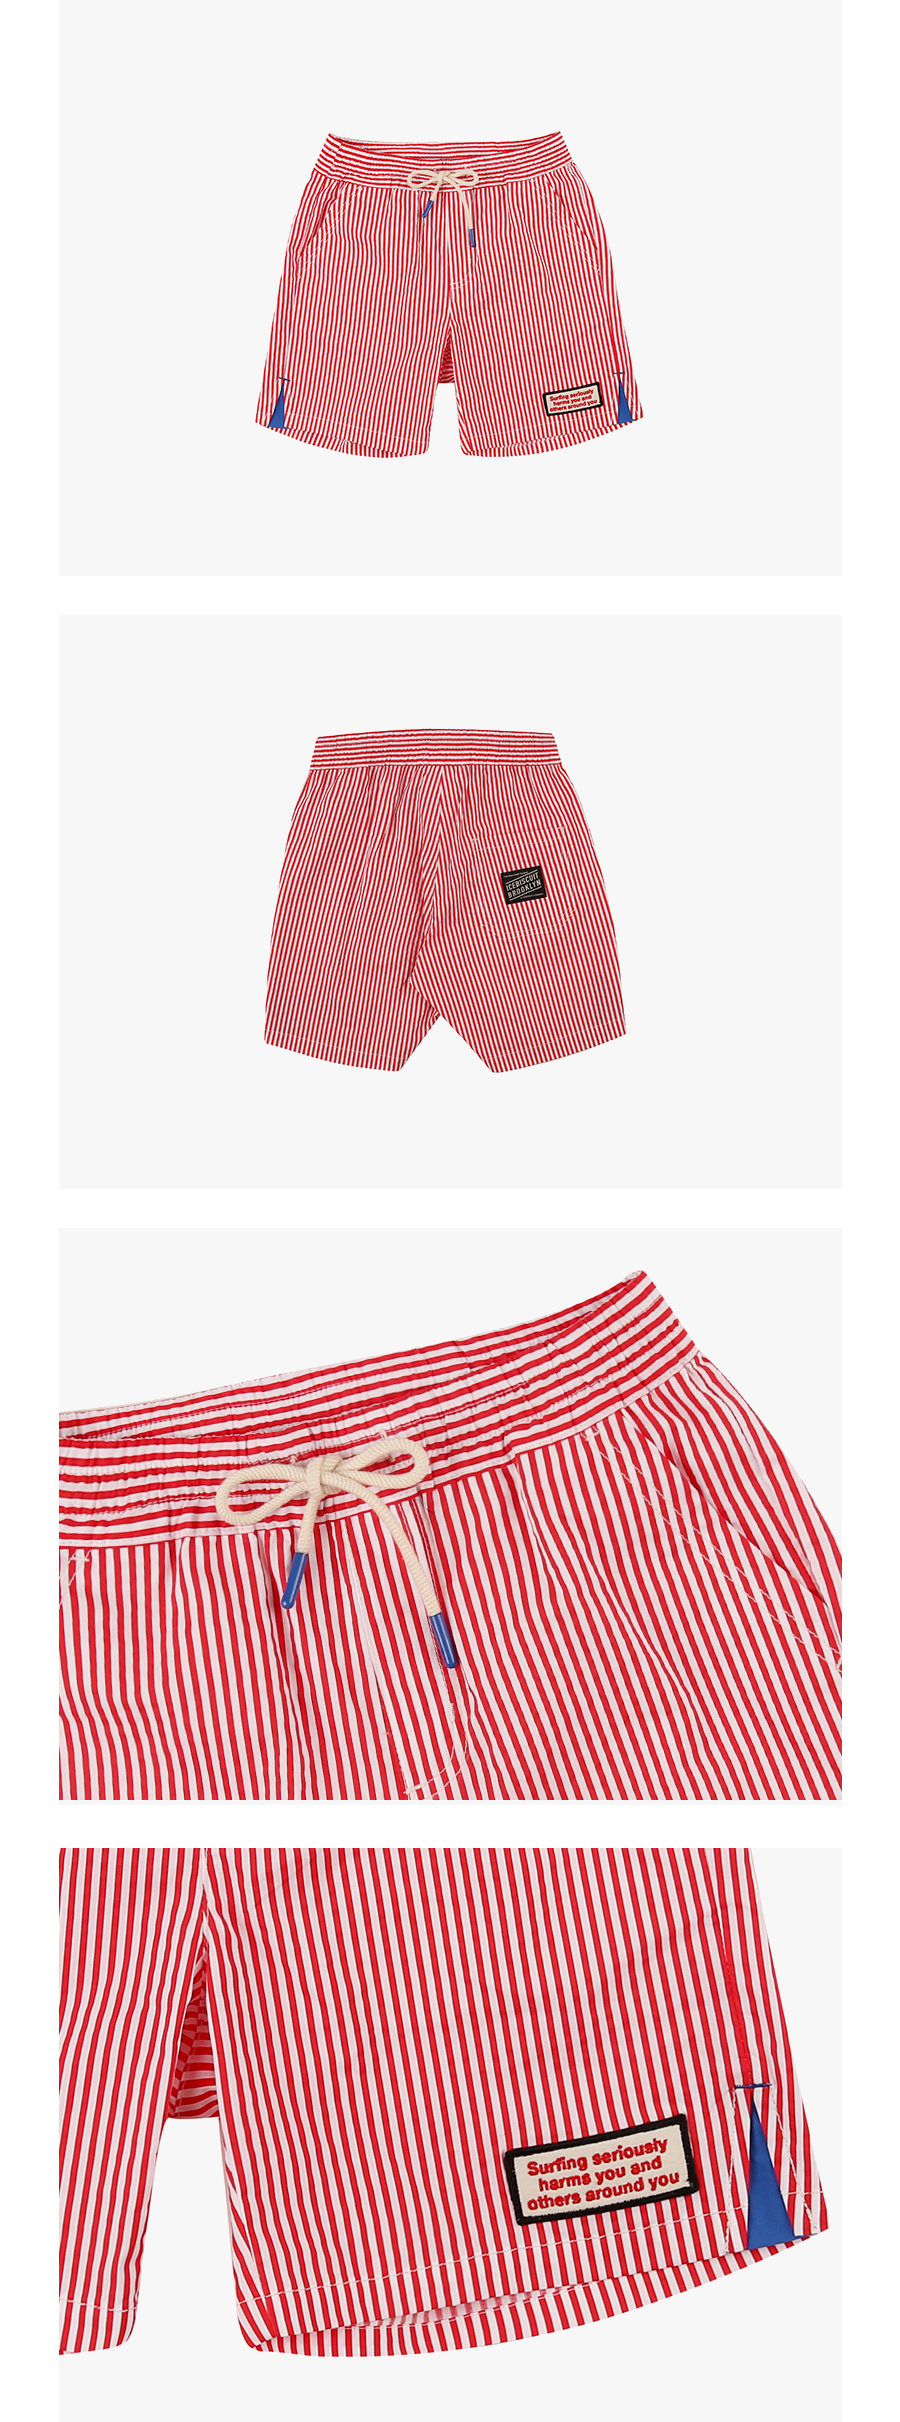 Surf club stripe shorts 상세 이미지